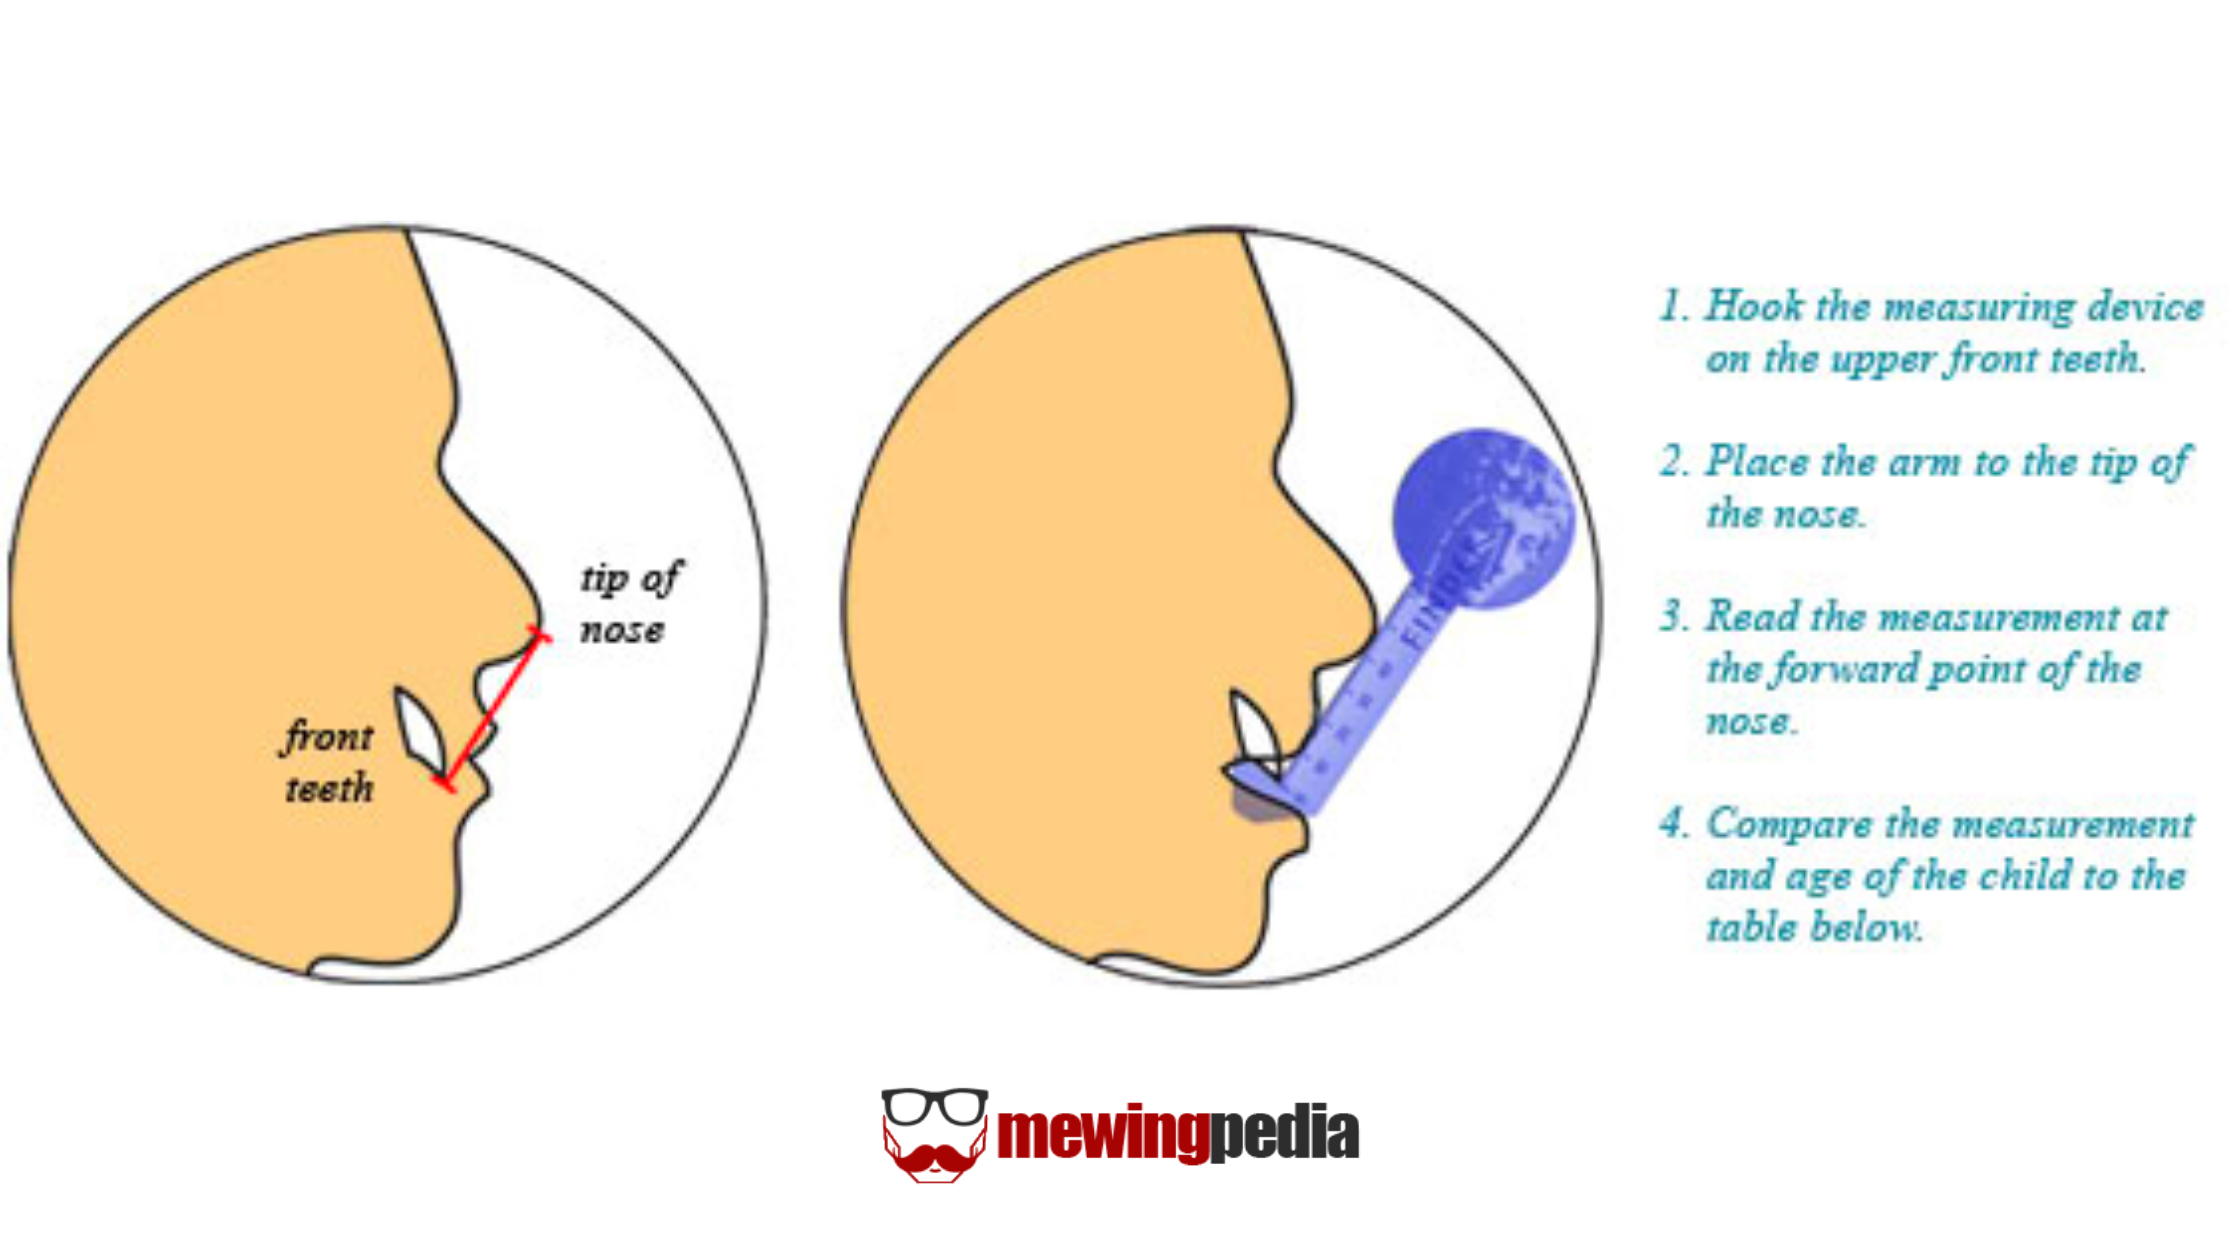 How to measure maxillary position?